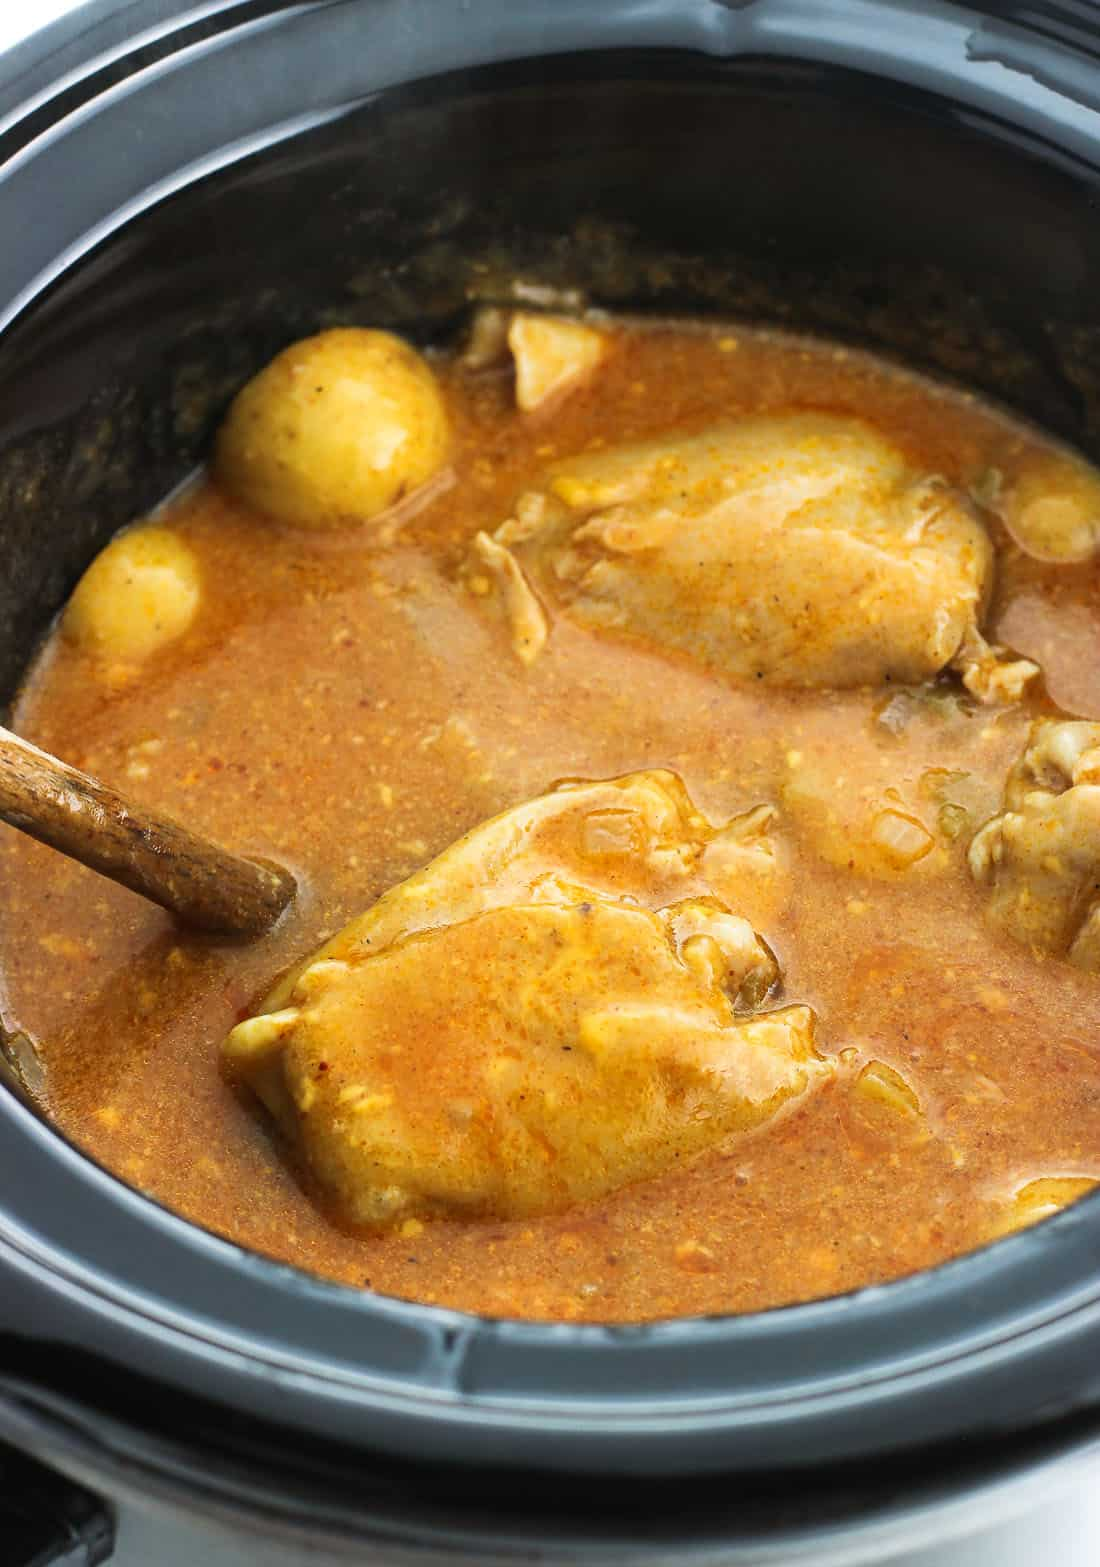 A spoon in a slow cooker filled with sauce and cooked chicken and potatoes.